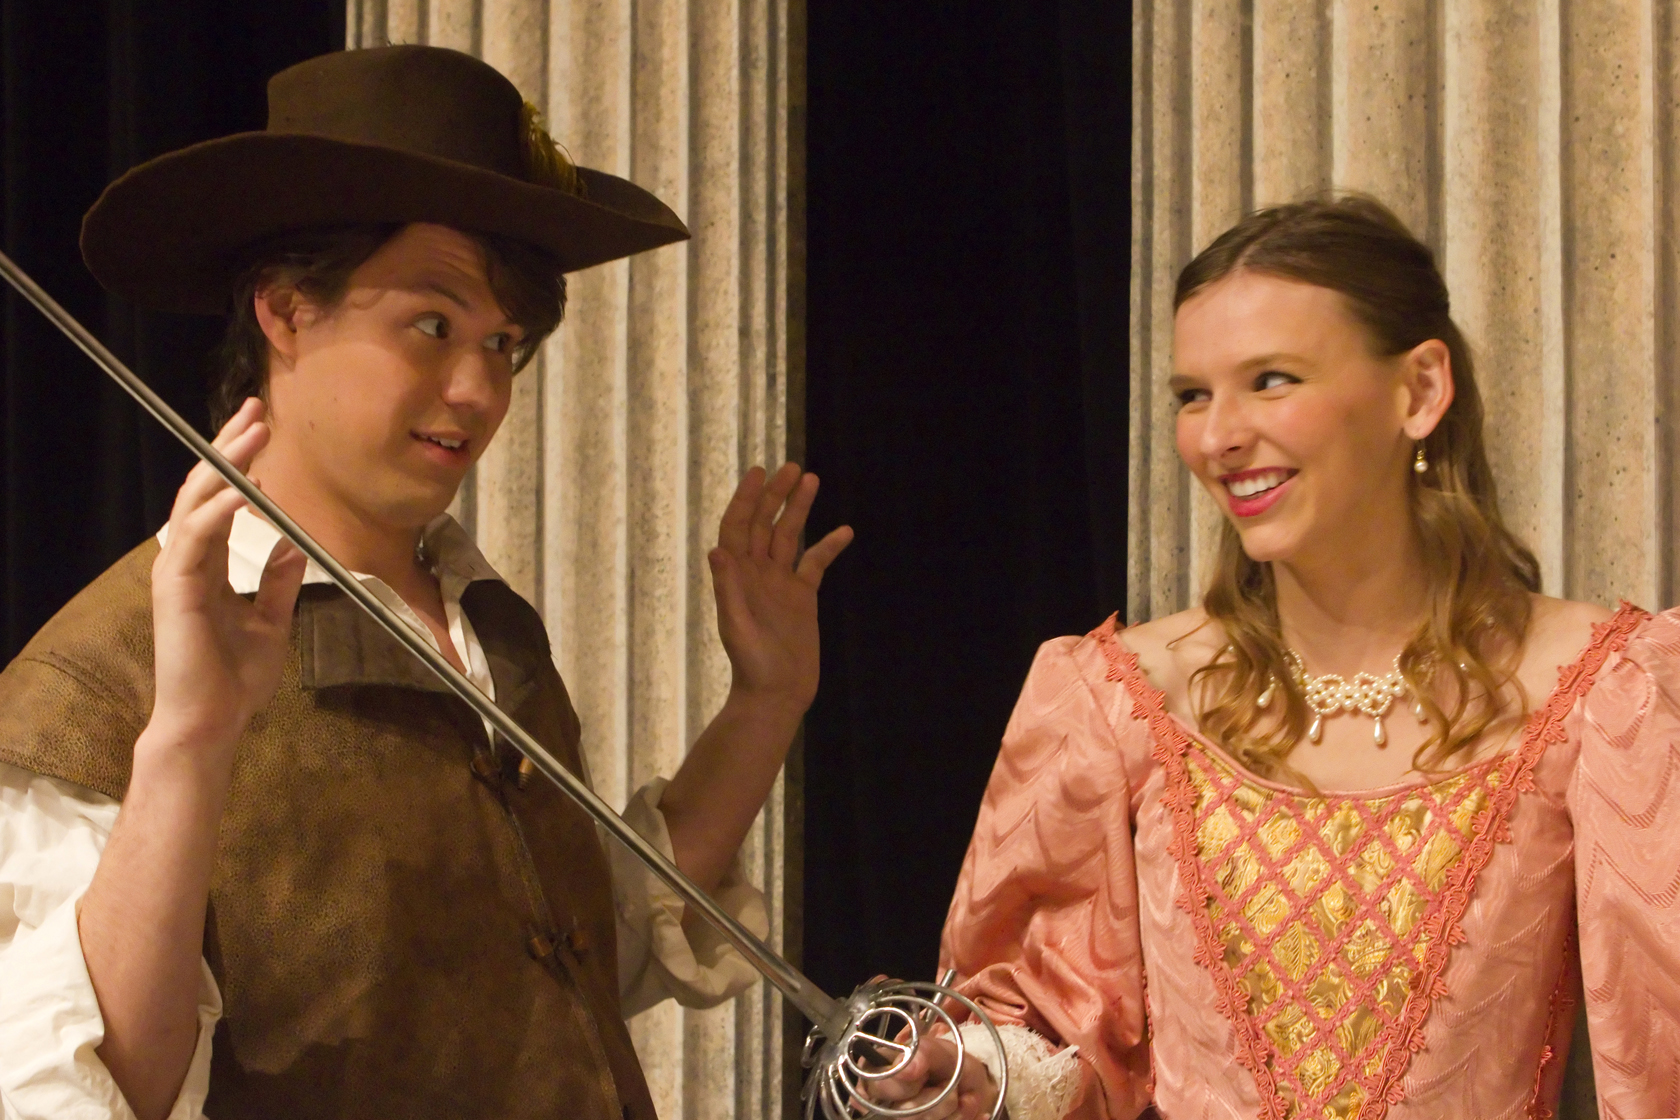 """Jordan Deffenbaugh and Lauren Huston are featured in the University Theatre's production of """"The Three Musketeers."""""""